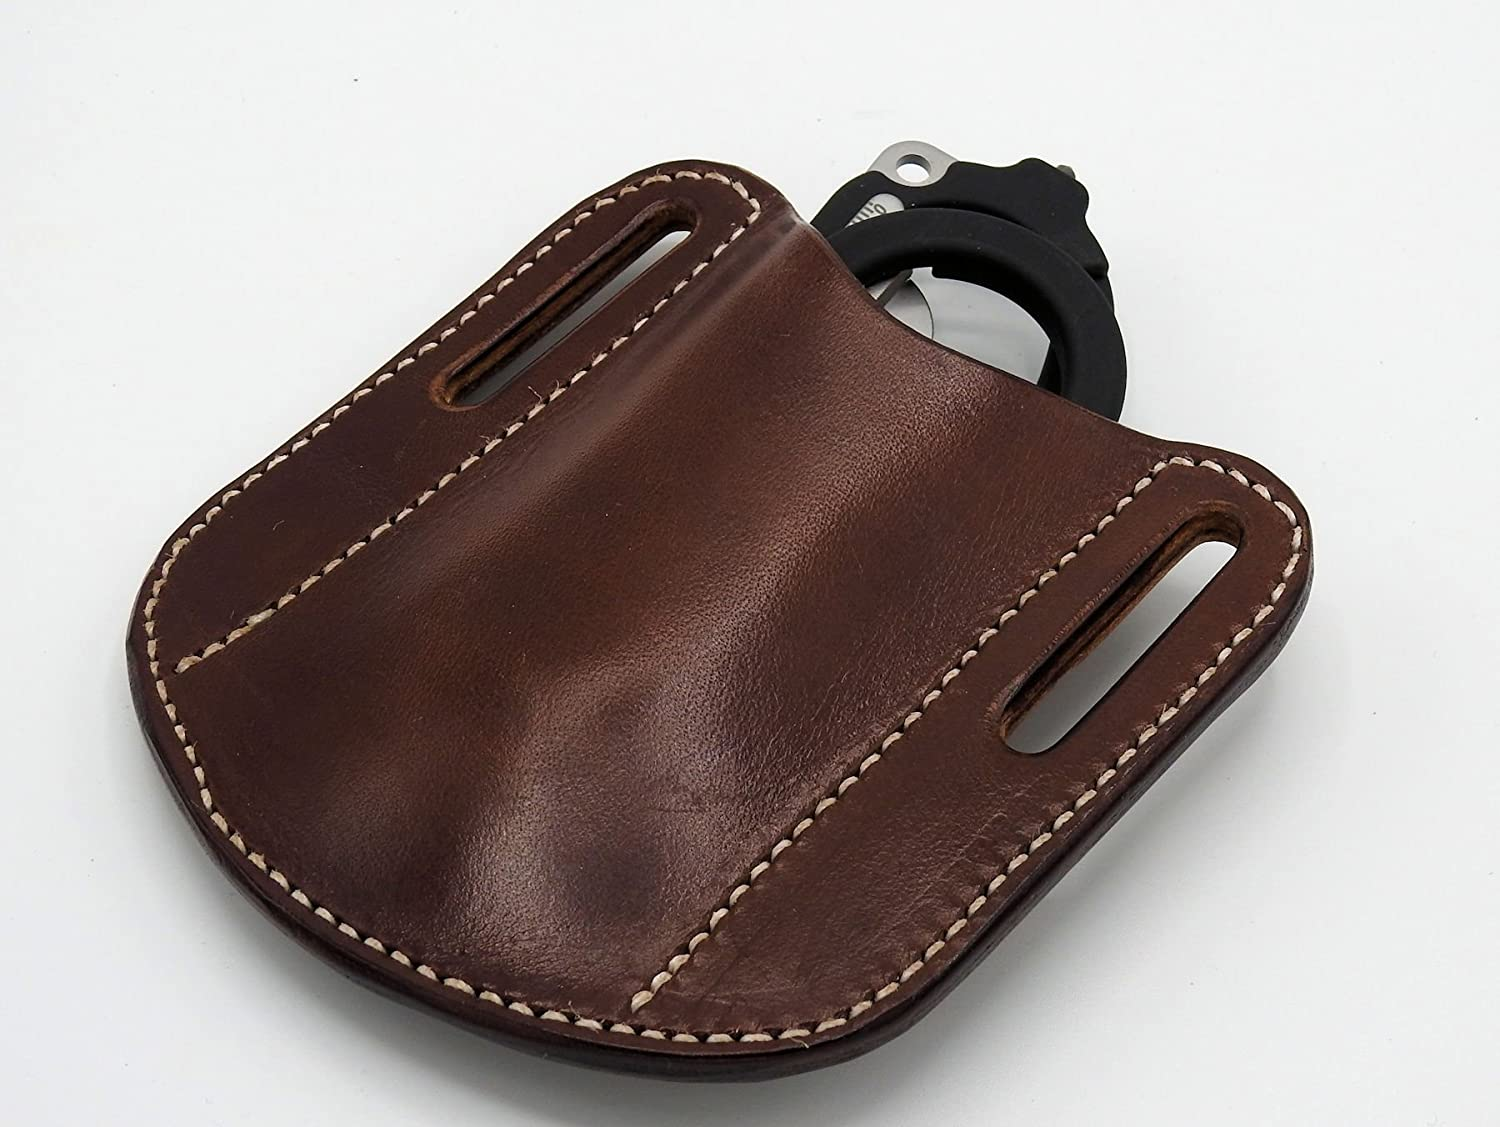 Leatherman - Raptor Shears Scissors Leather Sheath Case Holster, Brown